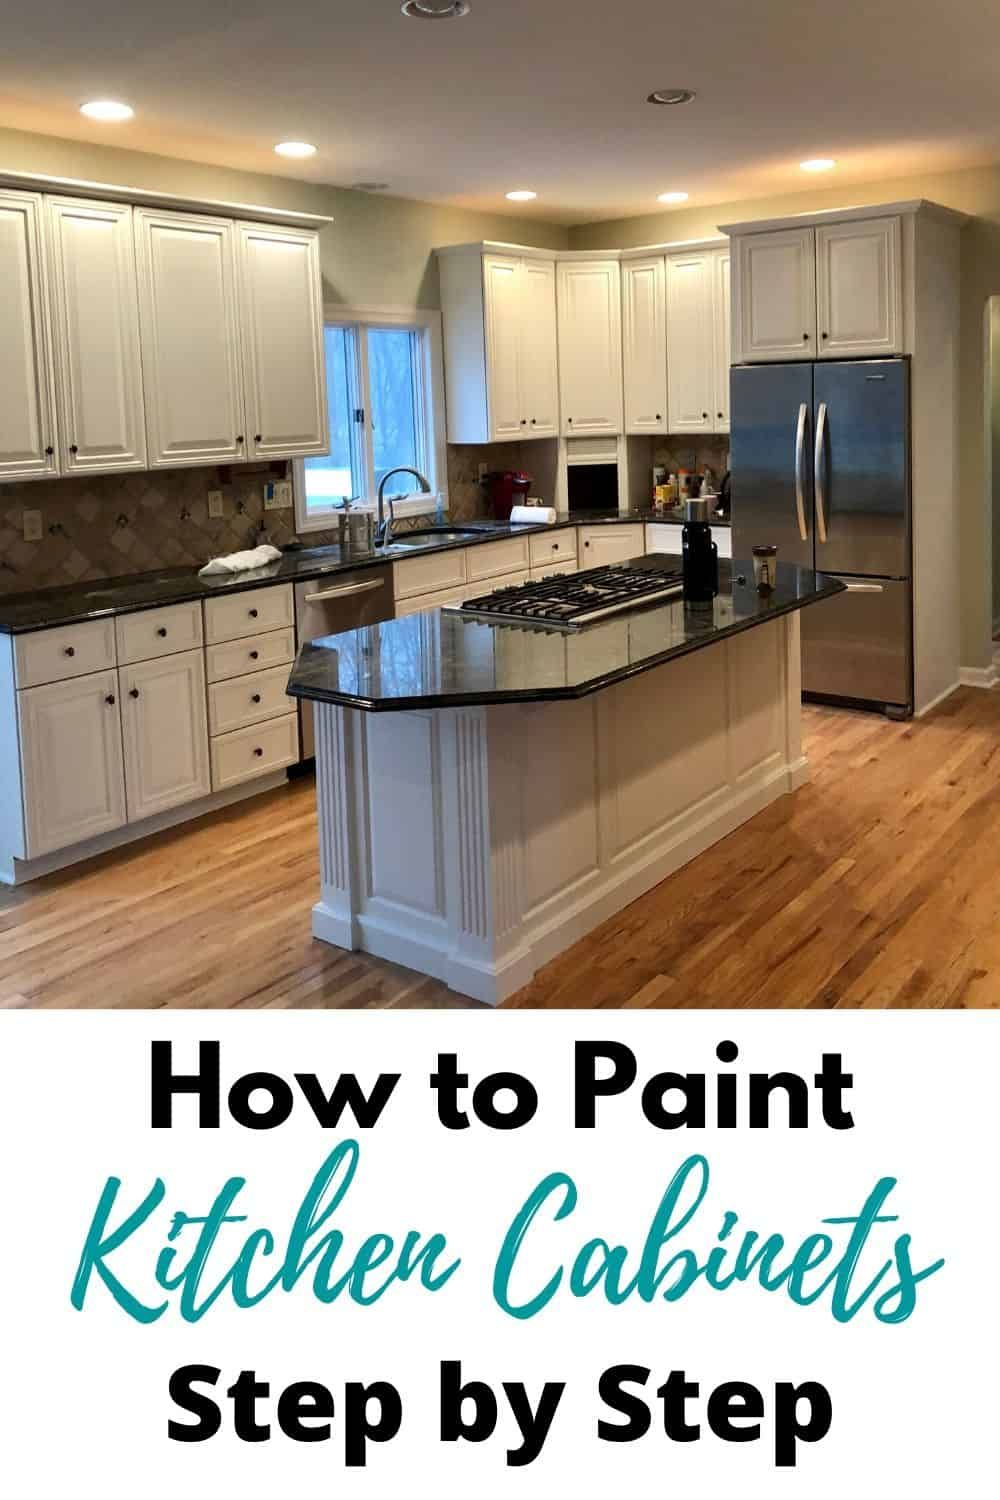 How To Paint Kitchen Cabinets Tips For A Smooth Finish West Magnolia Charm Diy Kitchen Cabinets Makeover Painting Kitchen Cabinets Diy Kitchen Renovation